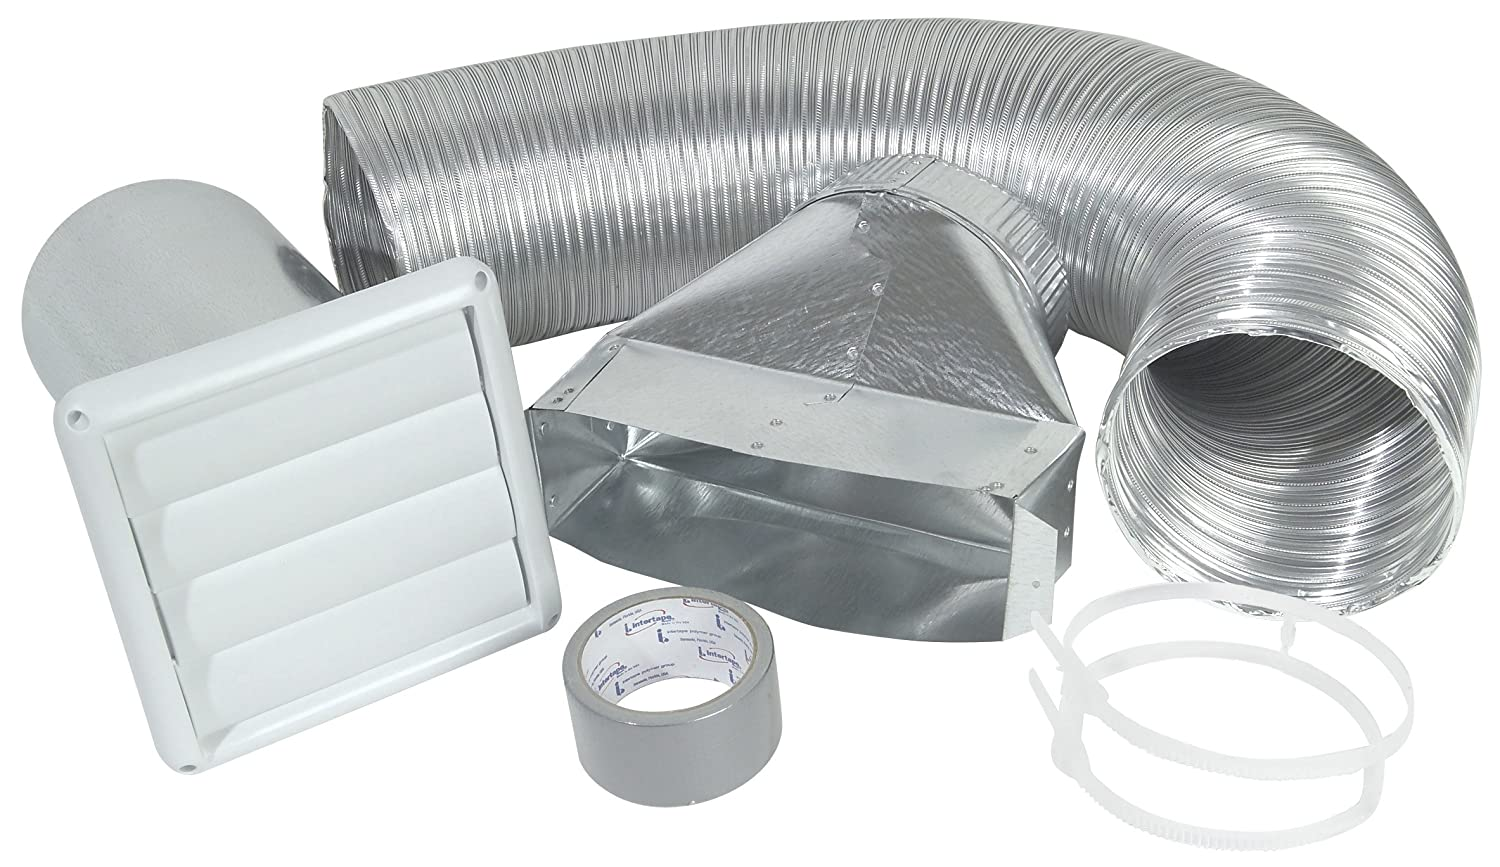 White Imperial 4 x 8-Foot Louvered Vent with Flexible Aluminum Ducting Dryer Vent Kit VT0271-A Imperial Manufacturing